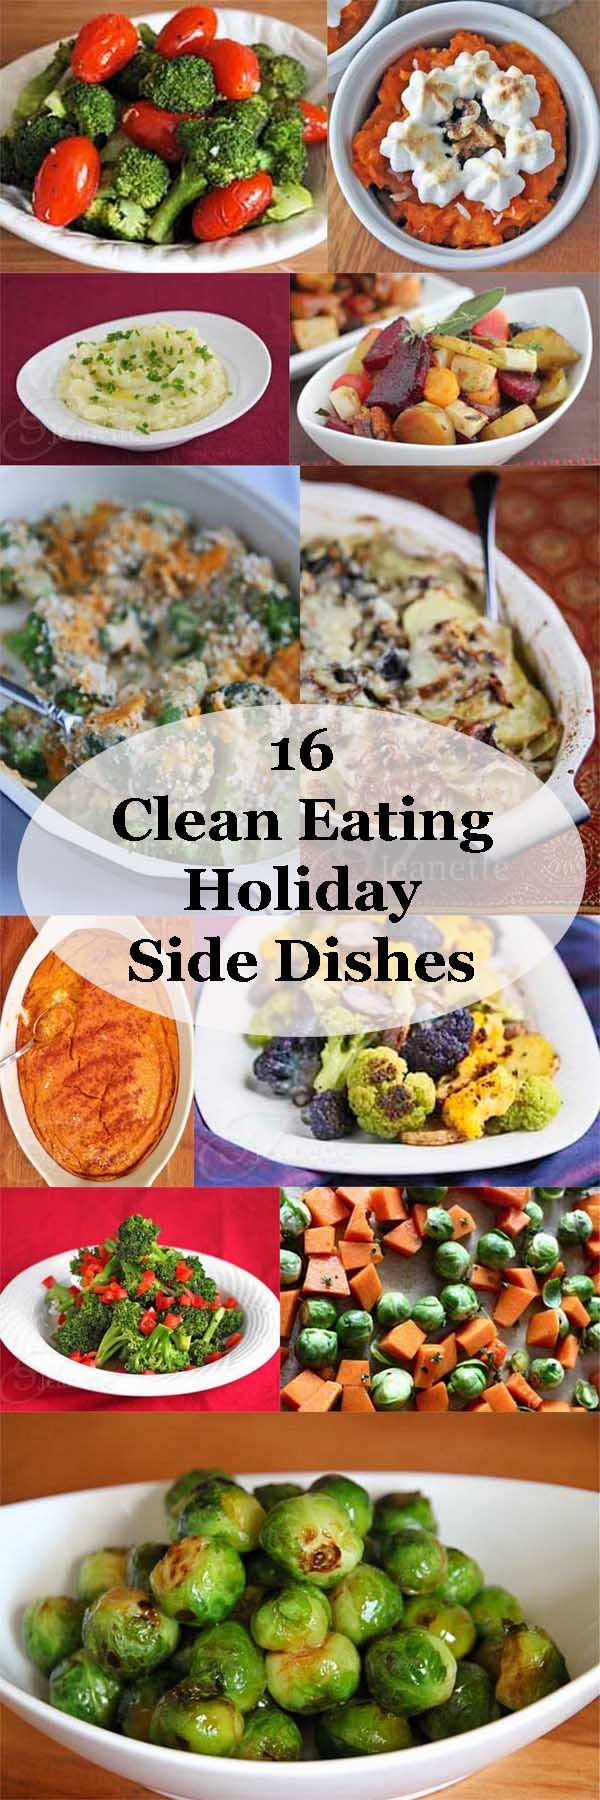 16 Clean Eating Holiday Side Dish Recipes